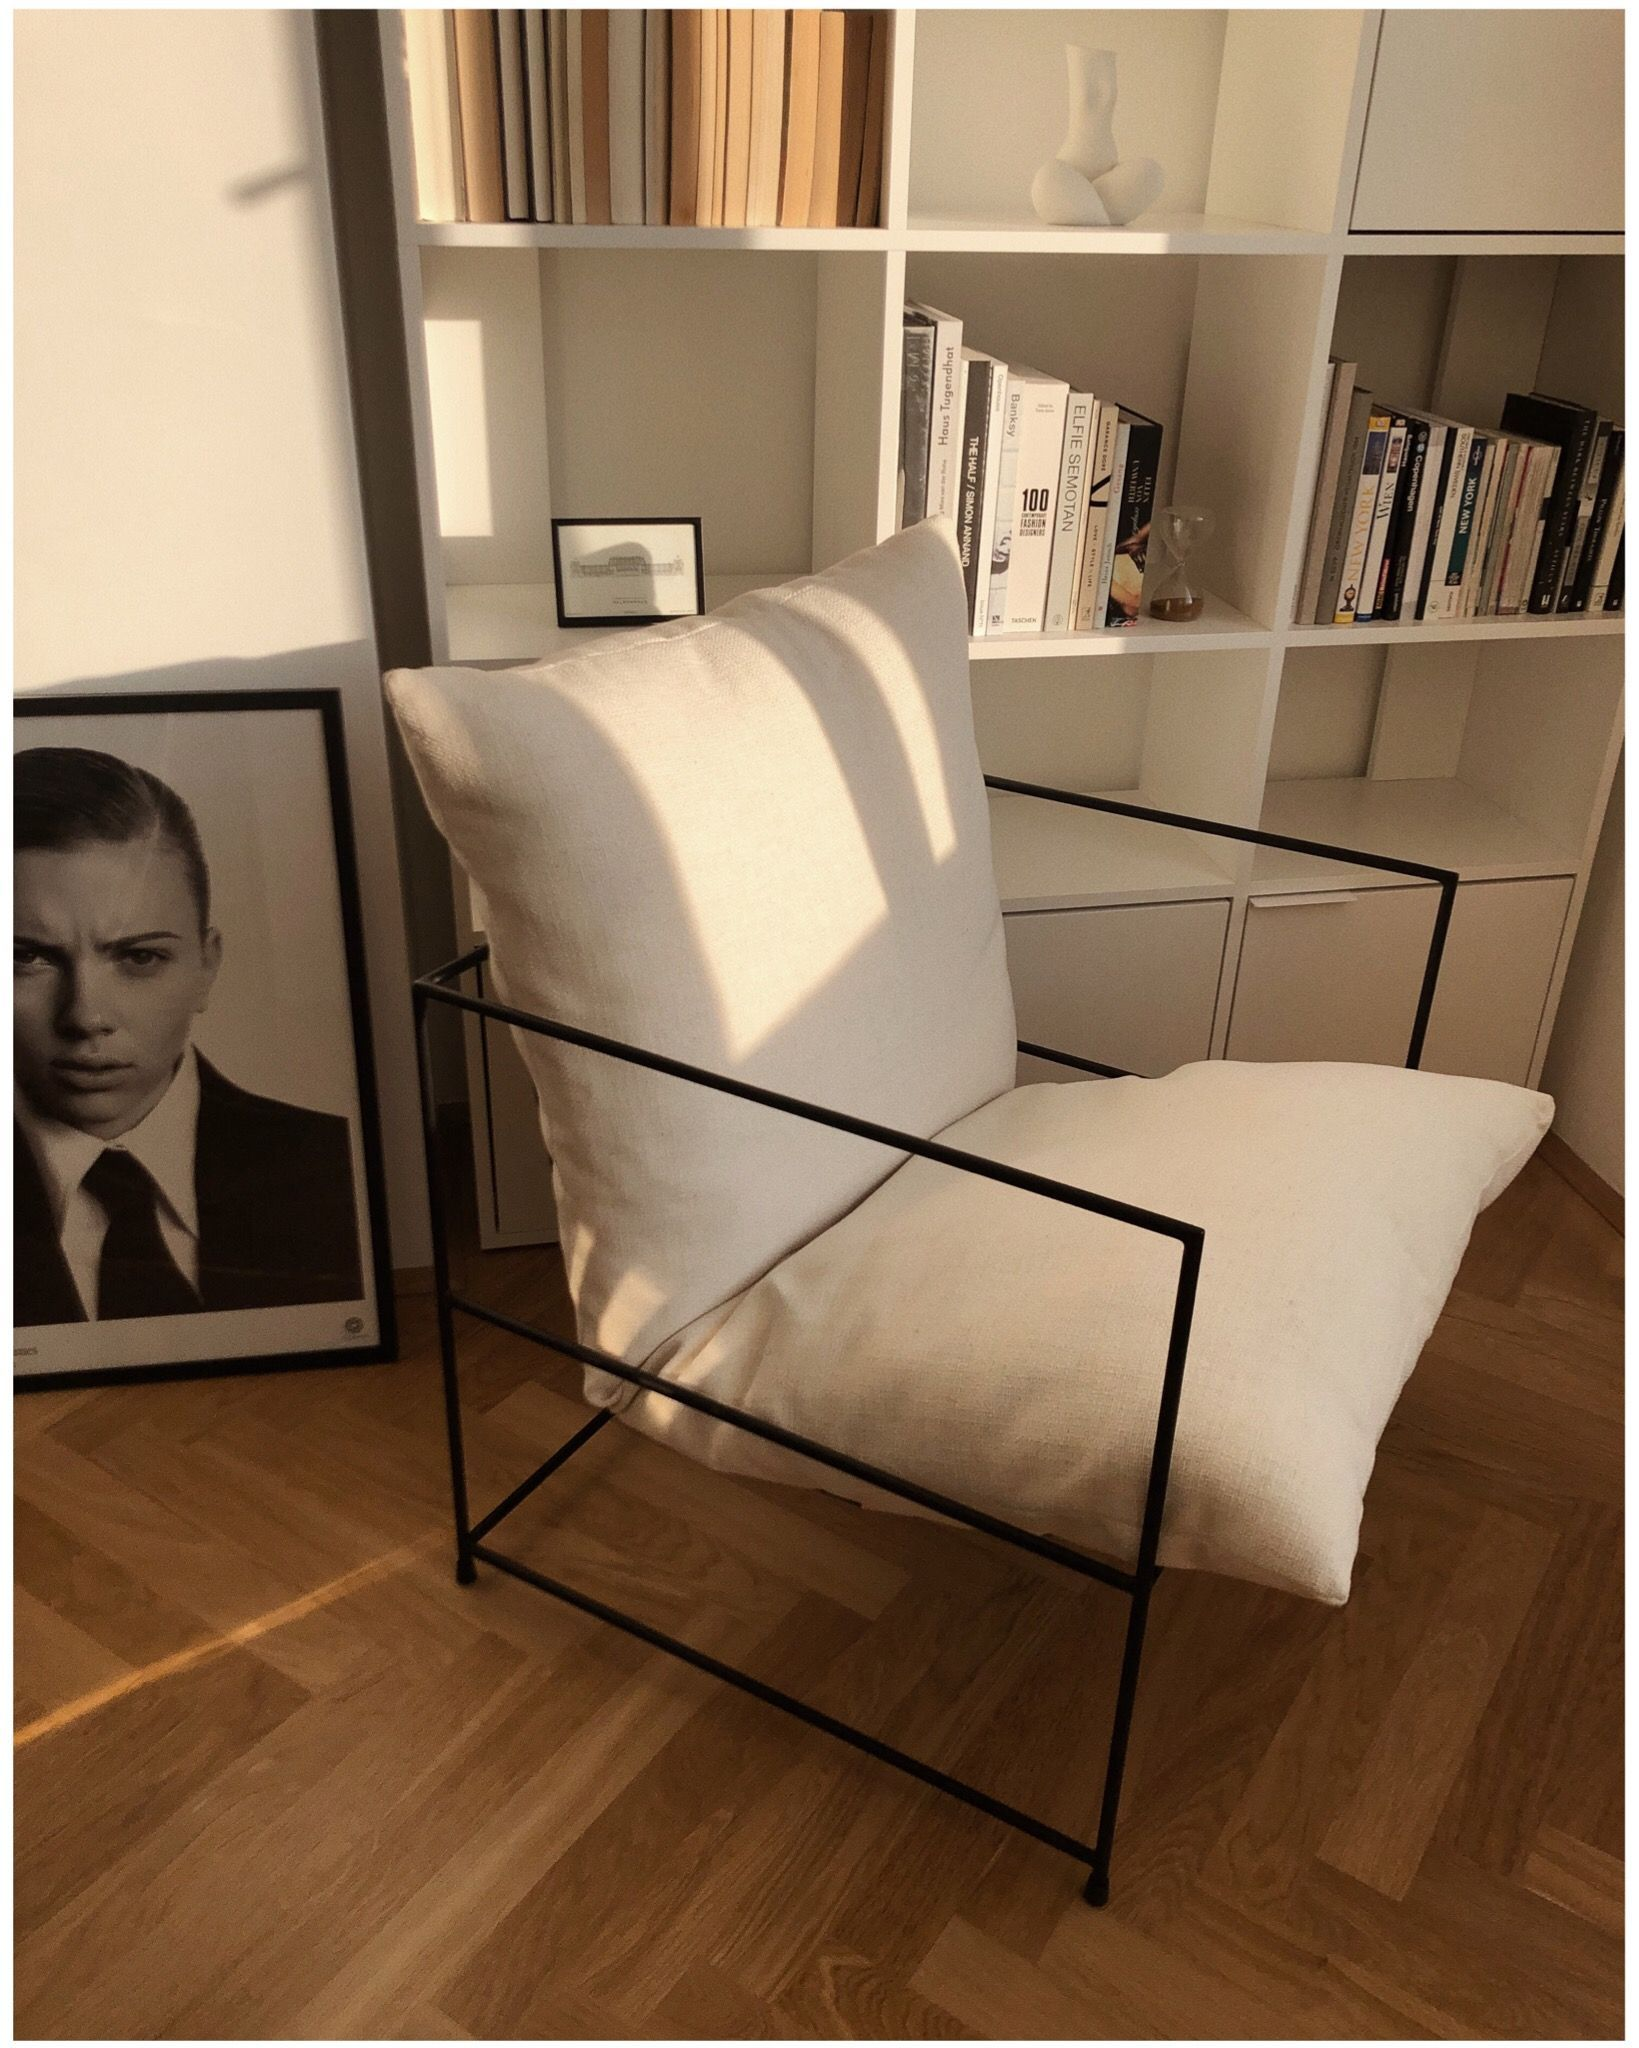 Photo of My Reading Nook – https://www.instagram.com/p/B5vUi9fF49-/